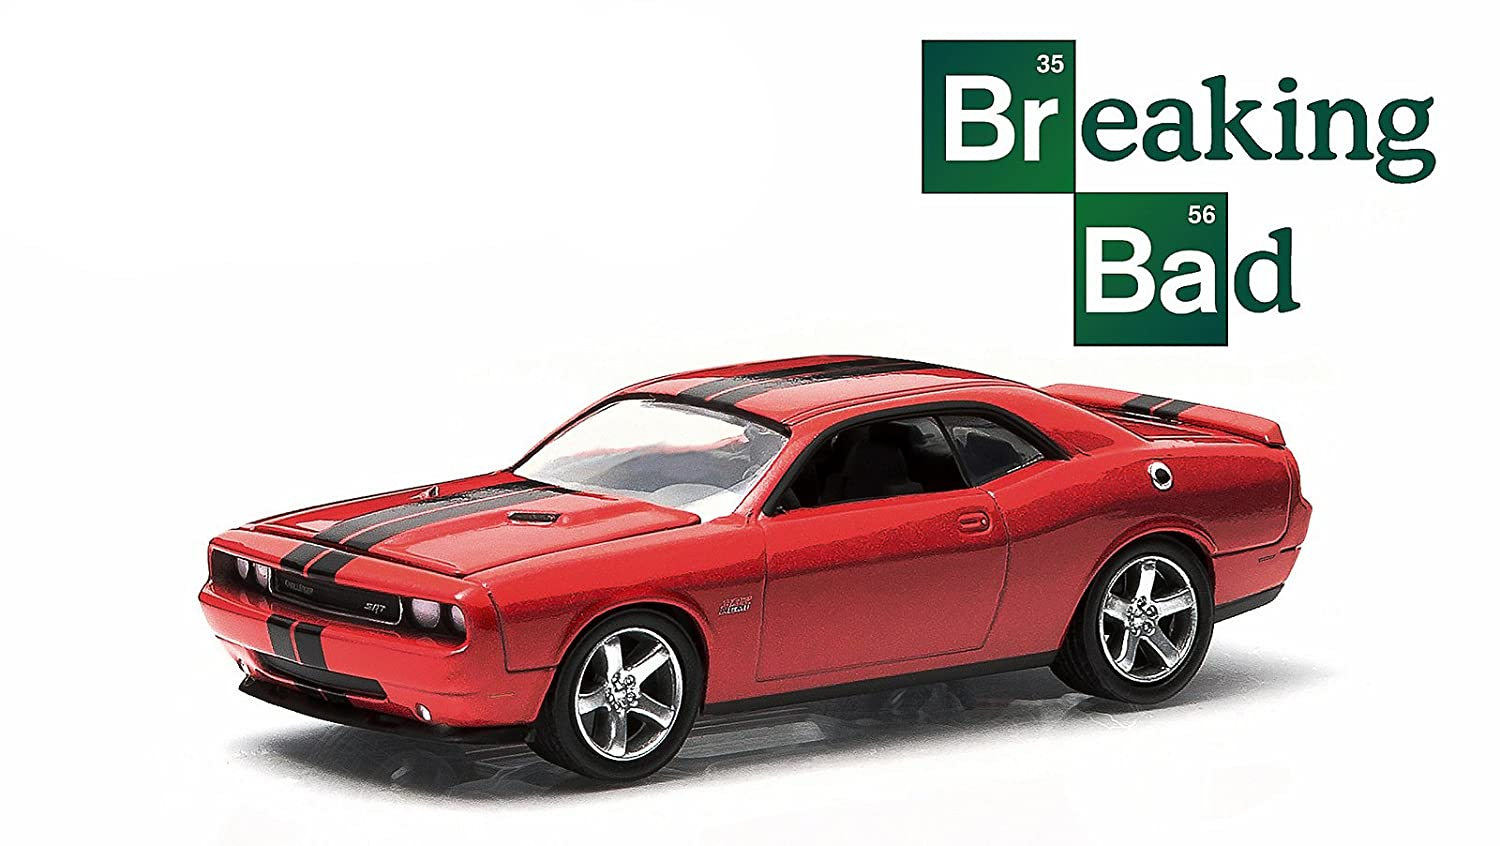 Amazon com new 1 64 hollywood series 9 red breaking bad 2012 dodge challenger srt8 diecast model car by greenlight toys games